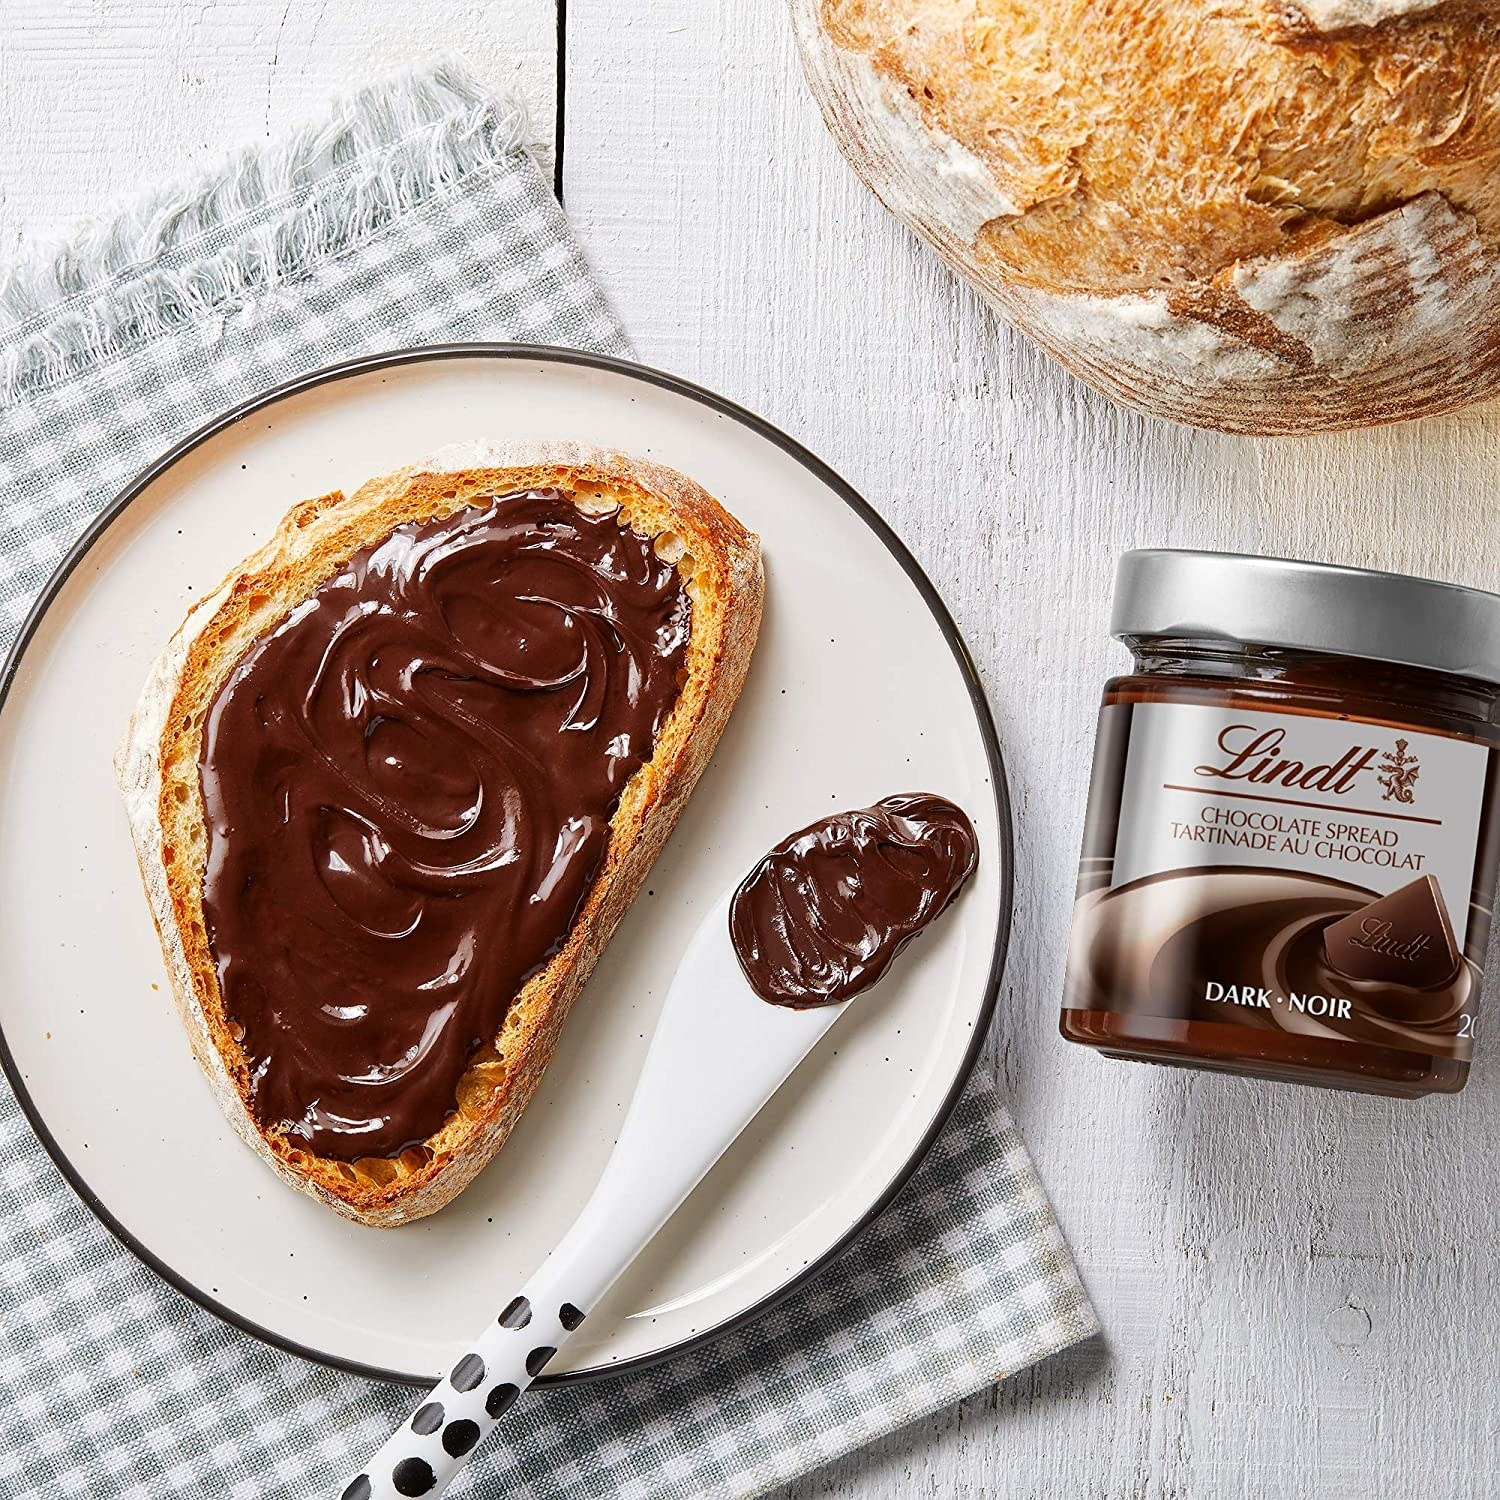 A piece of toast covered in Lindt chocolate spread next to the jar